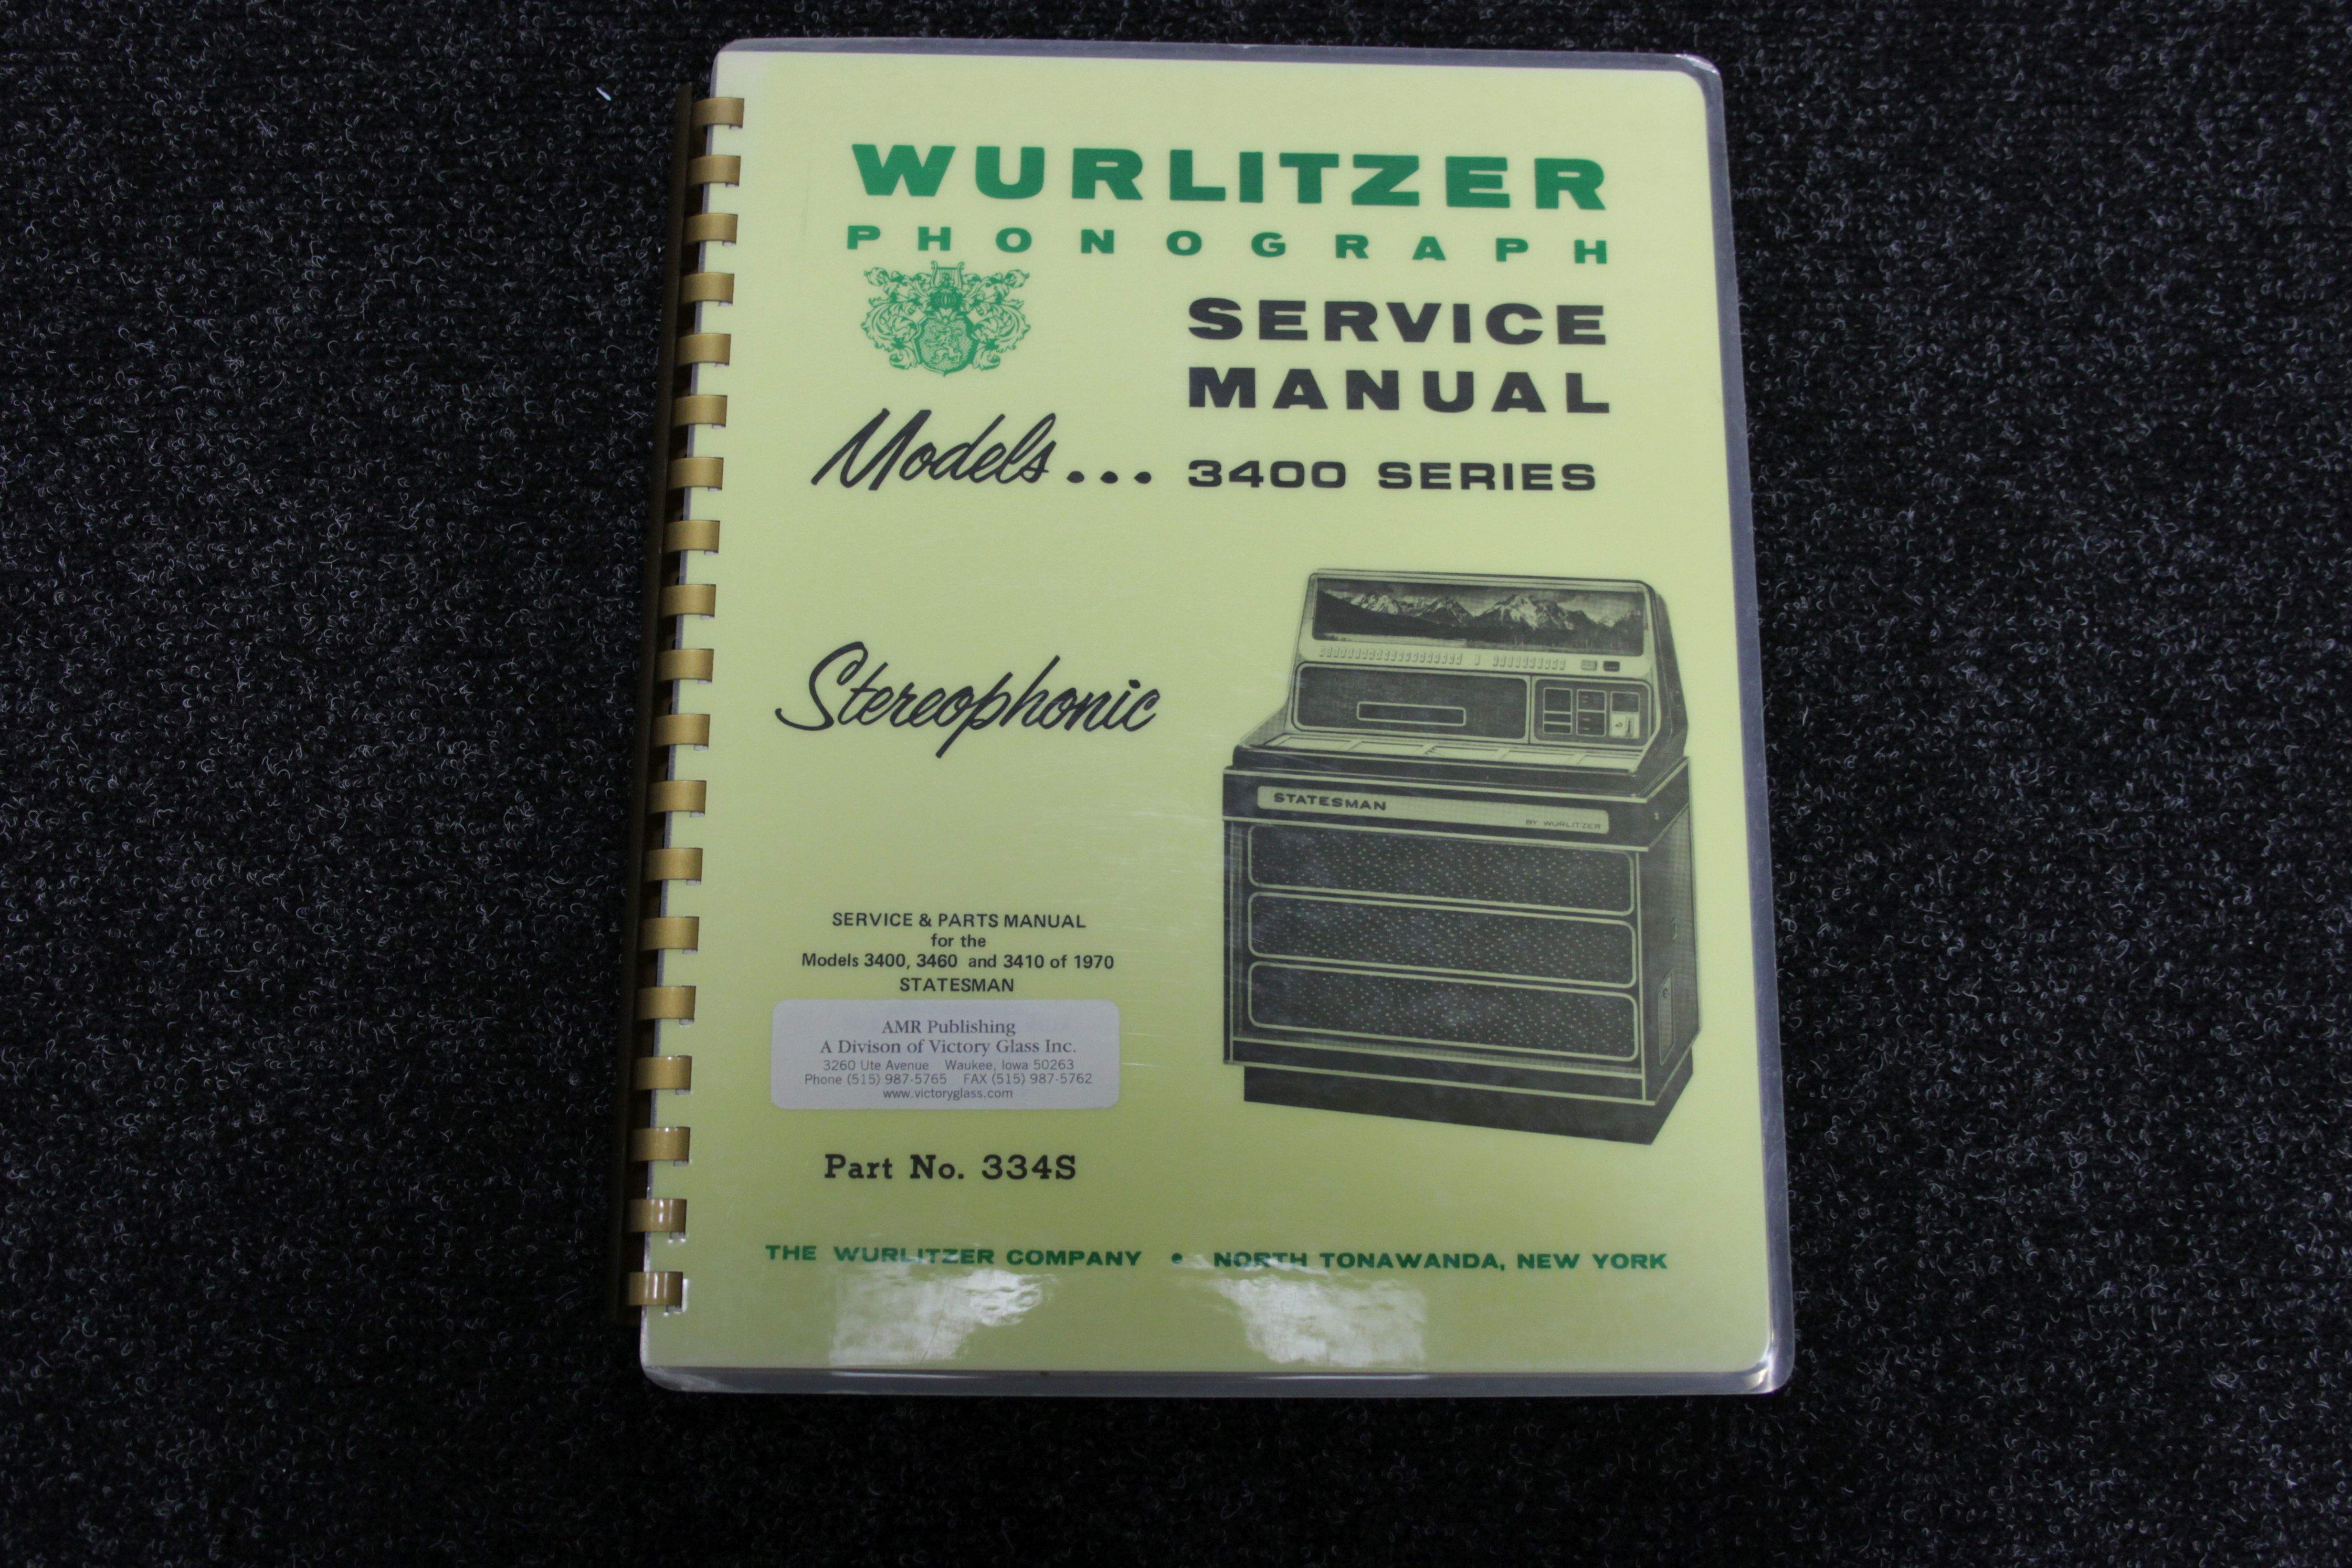 Wurlitzer Service Manual 3400 series